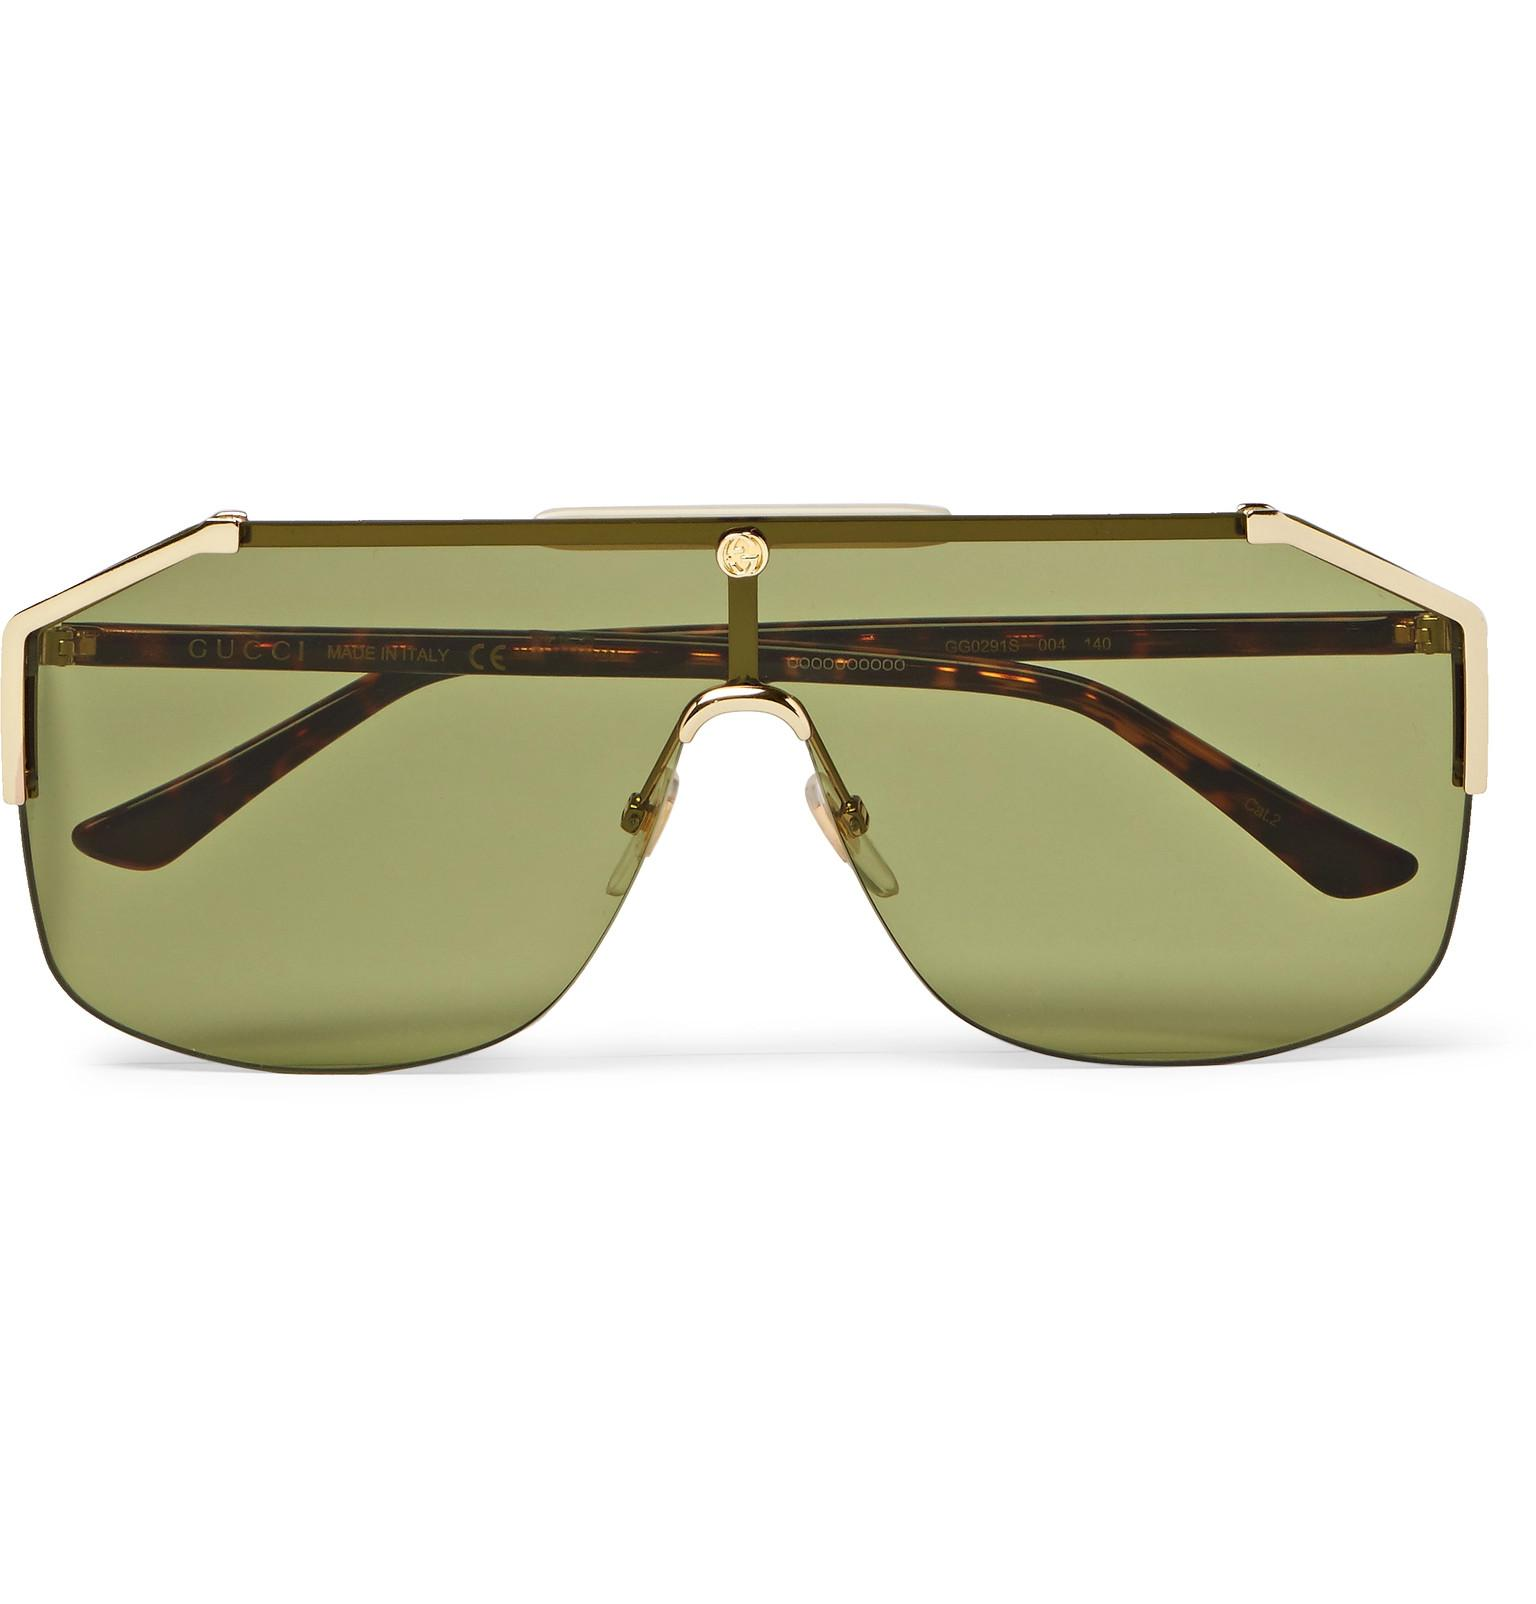 a7f02c8a7d4 Gucci Endura Oversized Aviator-style Gold-tone And Tortoiseshell ...